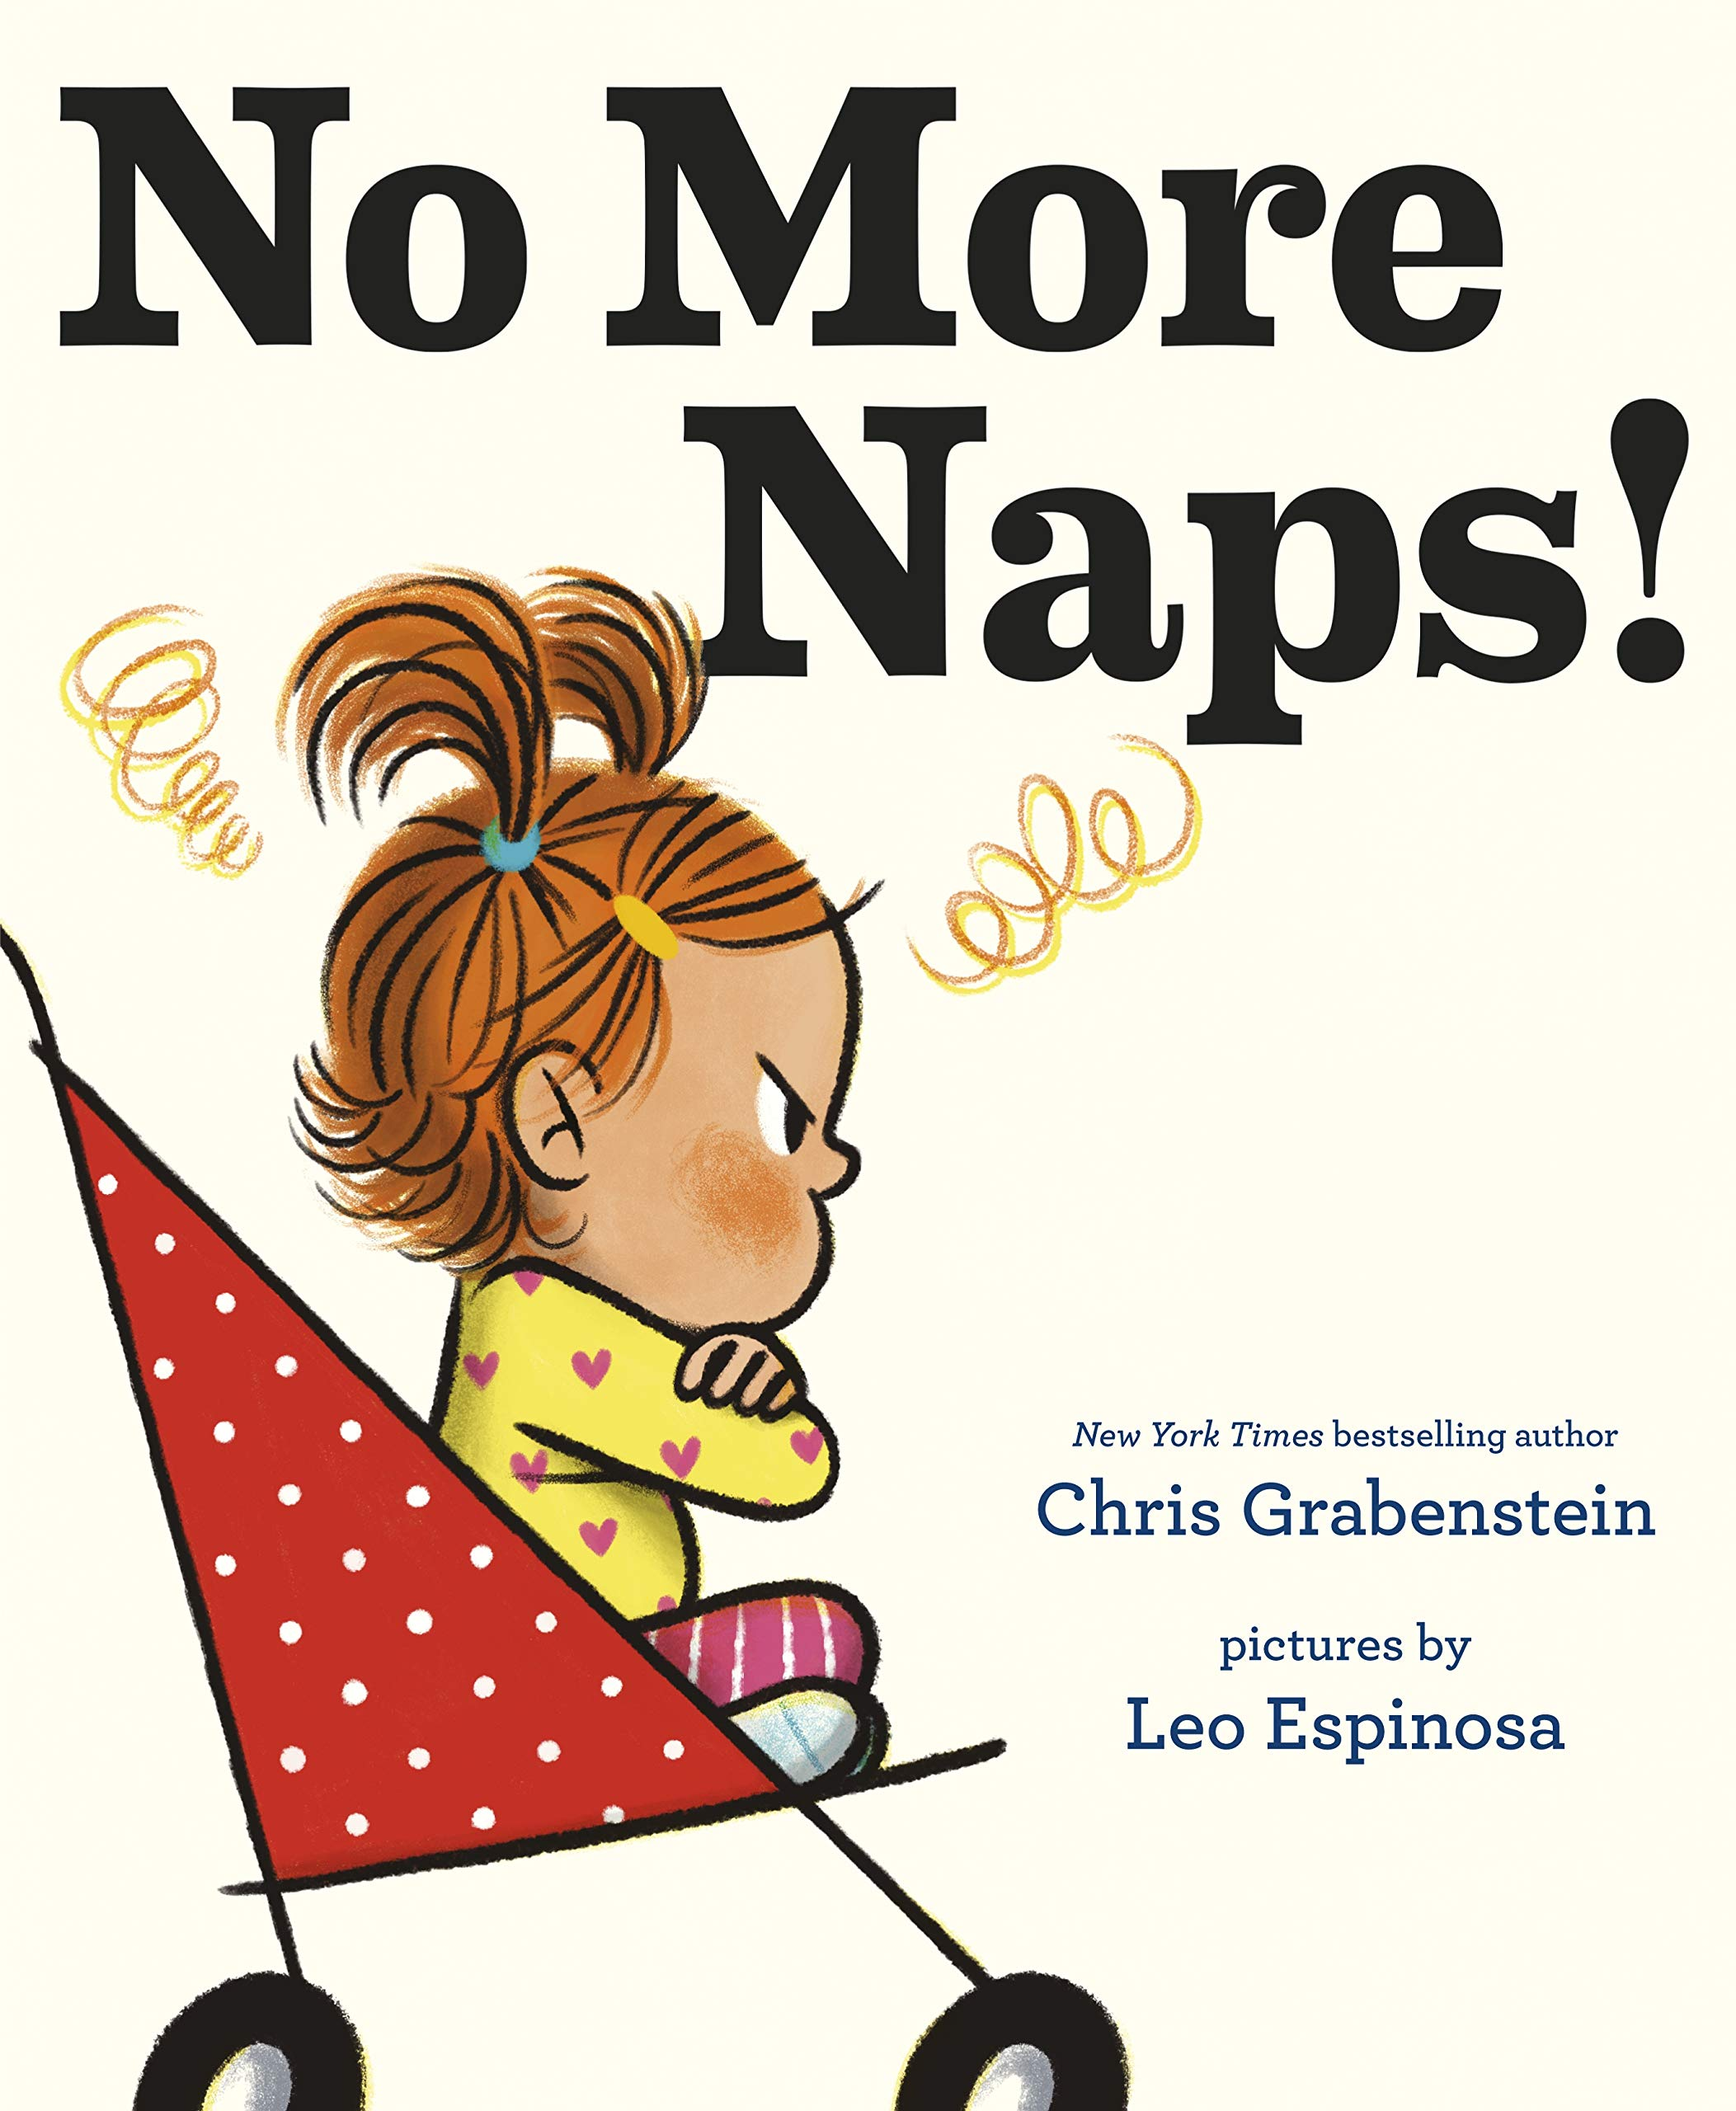 Sunday Story Time: No More Naps! with Chris Grabenstein